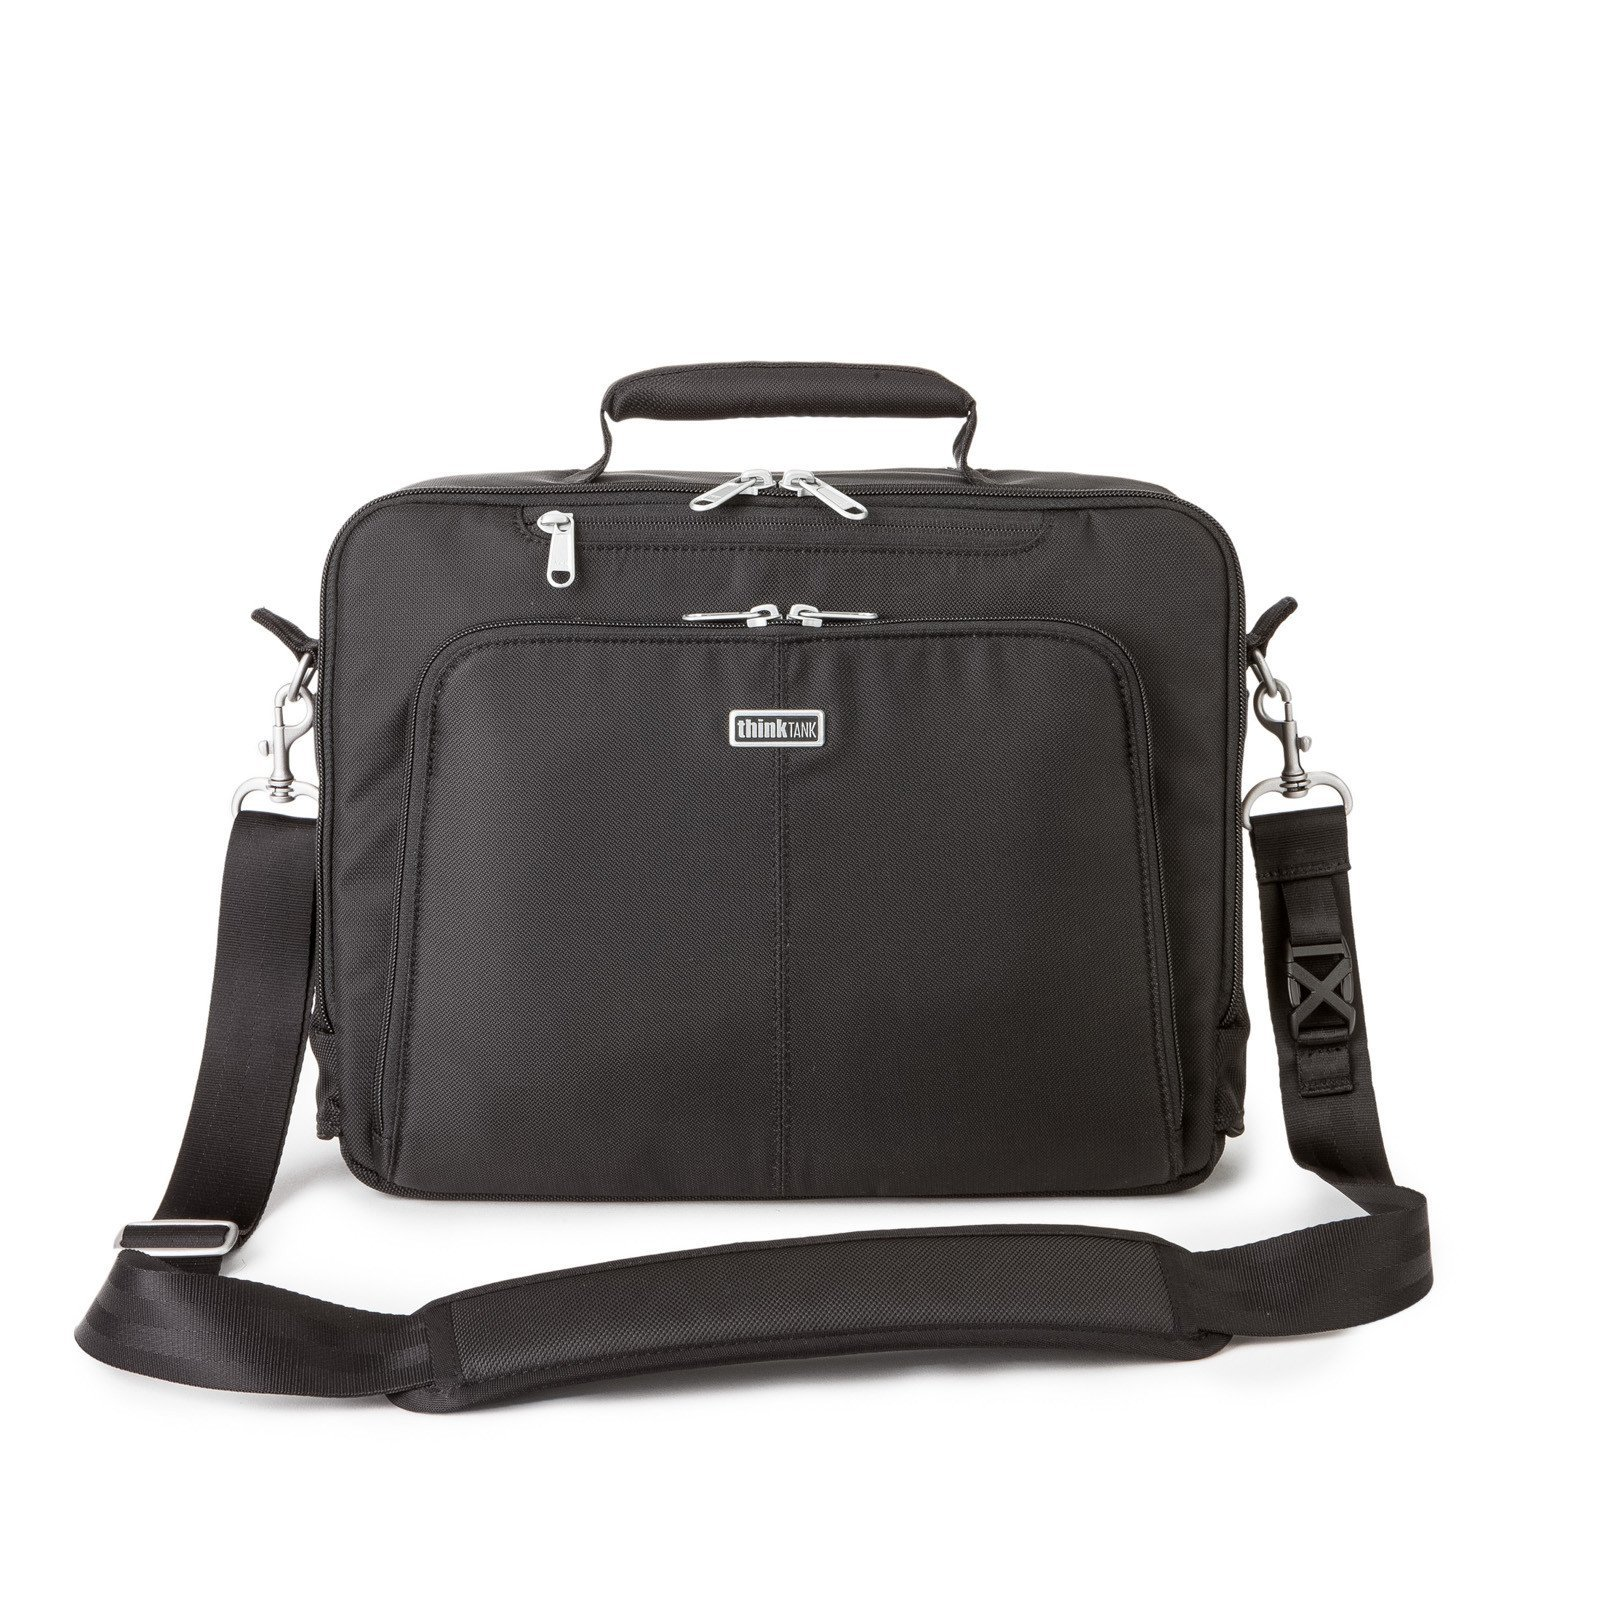 Think Tank Photo My 2nd Brain Briefcase for 13'' Laptop (Black) by Think Tank (Image #1)